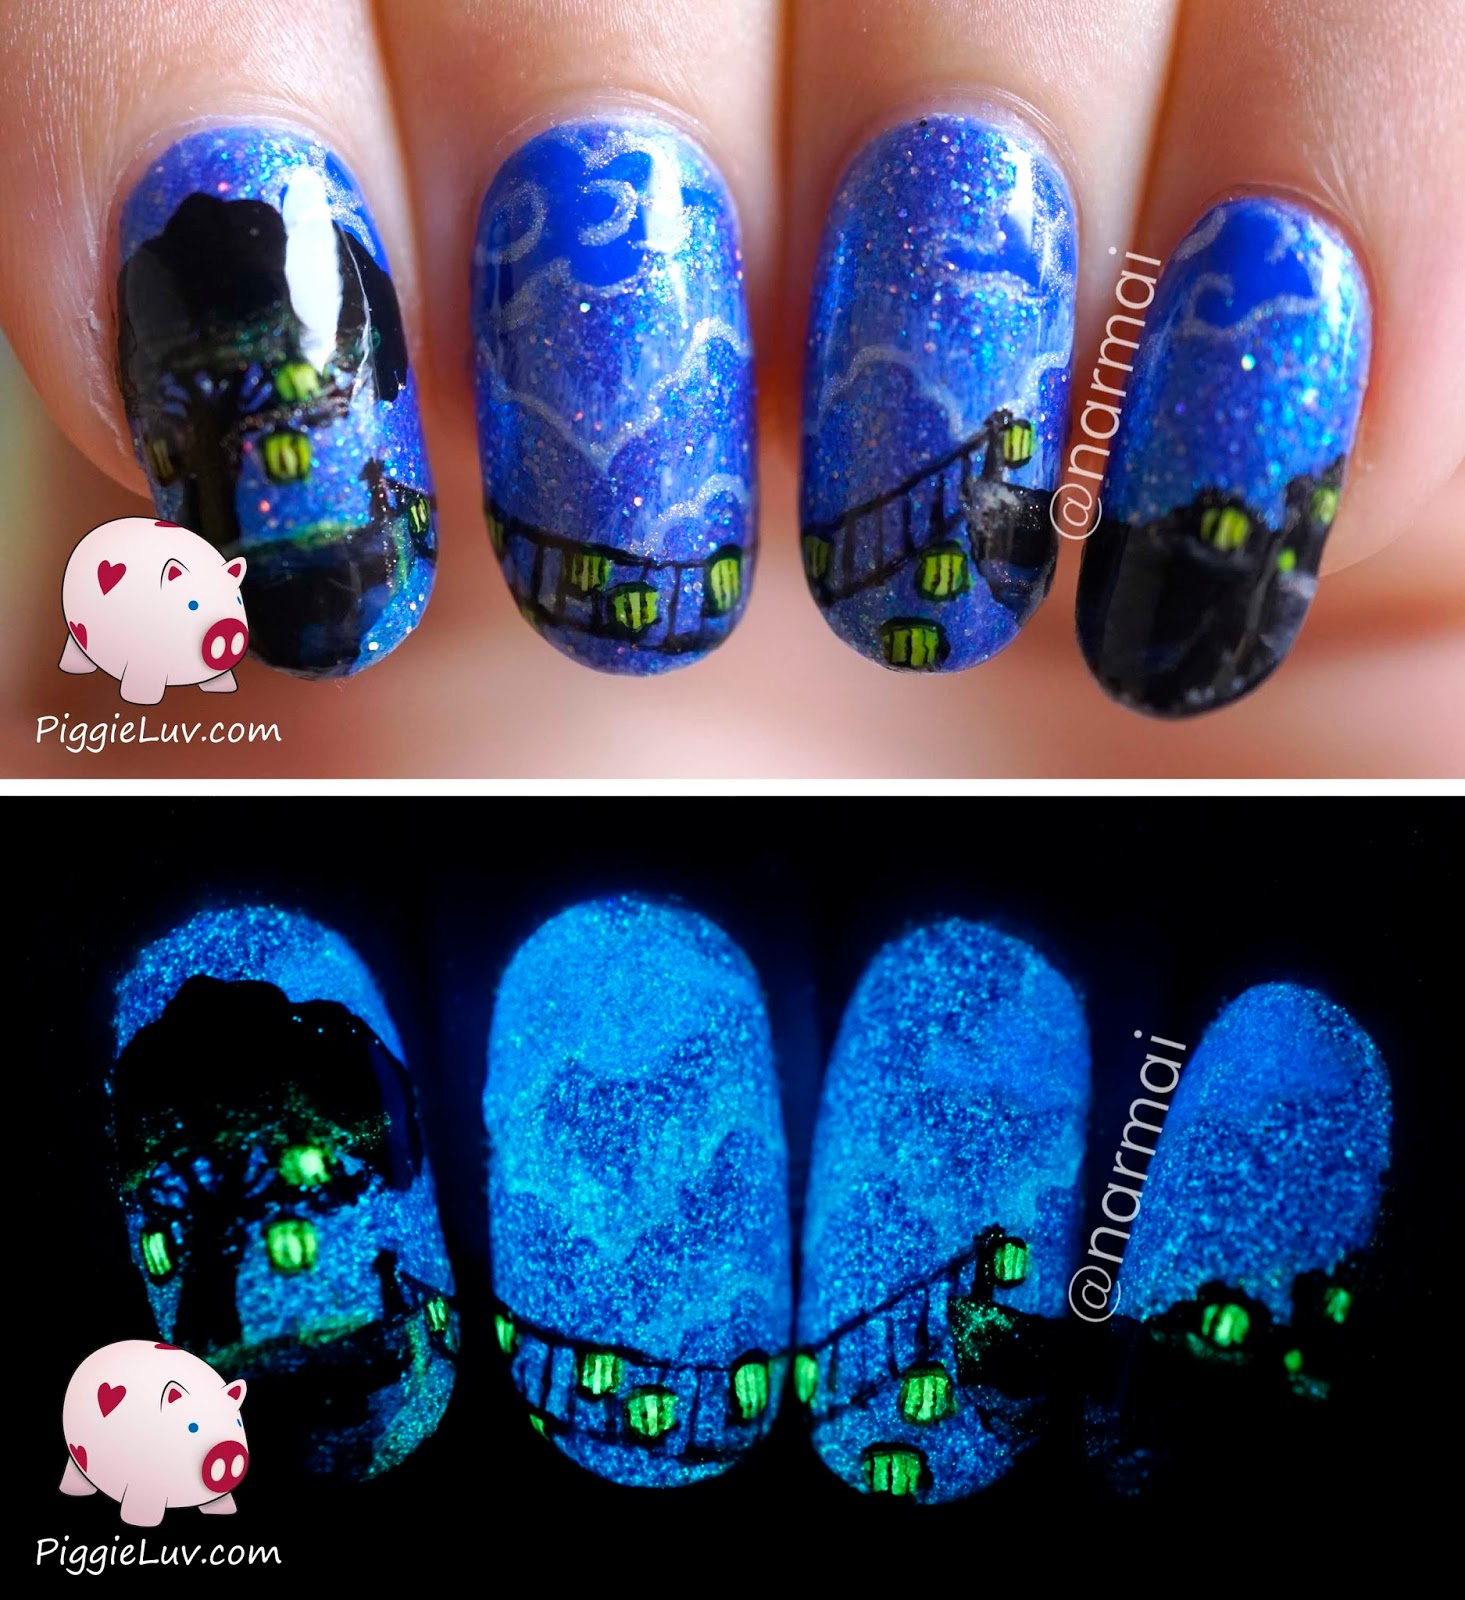 PiggieLuv: Glow in the dark bridge nail art (painted with polish)